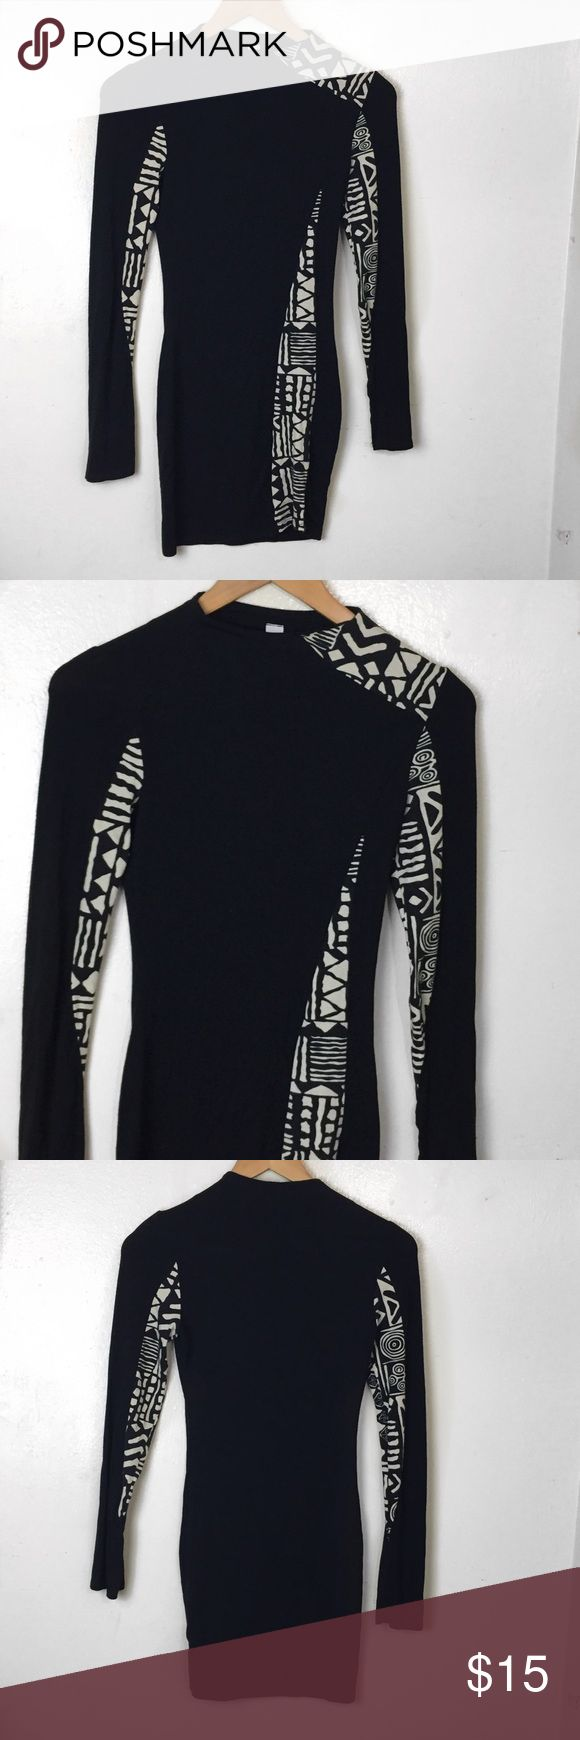 GoJane Black Aztec Print Long Sleeve Bodycon Dress GoJane Black Aztec Print Long Sleeve Bodycon Dress. Size Small. Great Stretch. Perfect for girls night out! Go Jane Dresses Long Sleeve